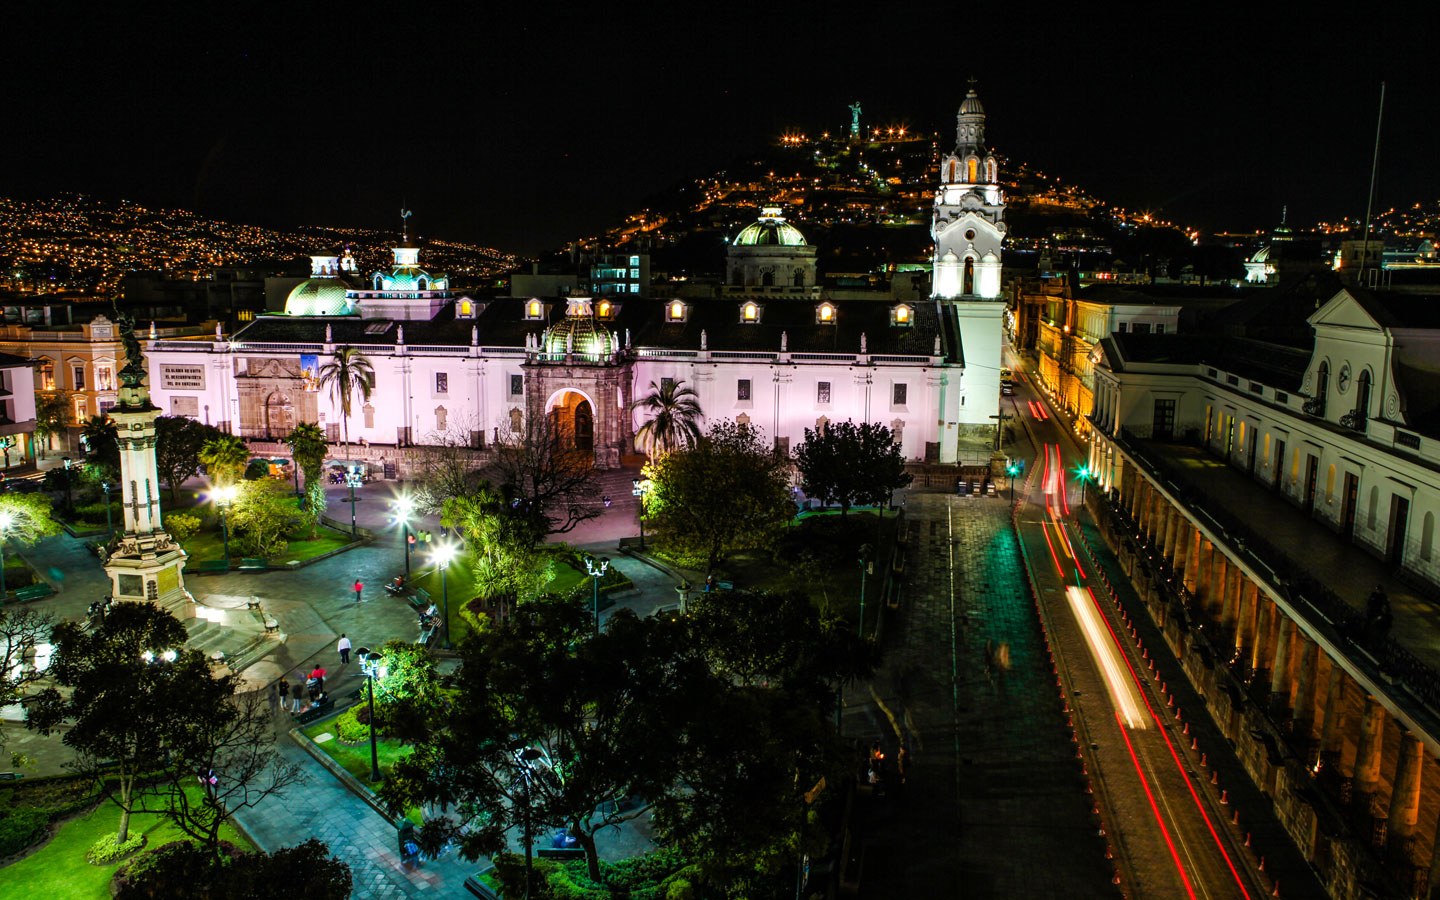 An overlook of the Plaza Grande of Quito with the Panecillo in the background